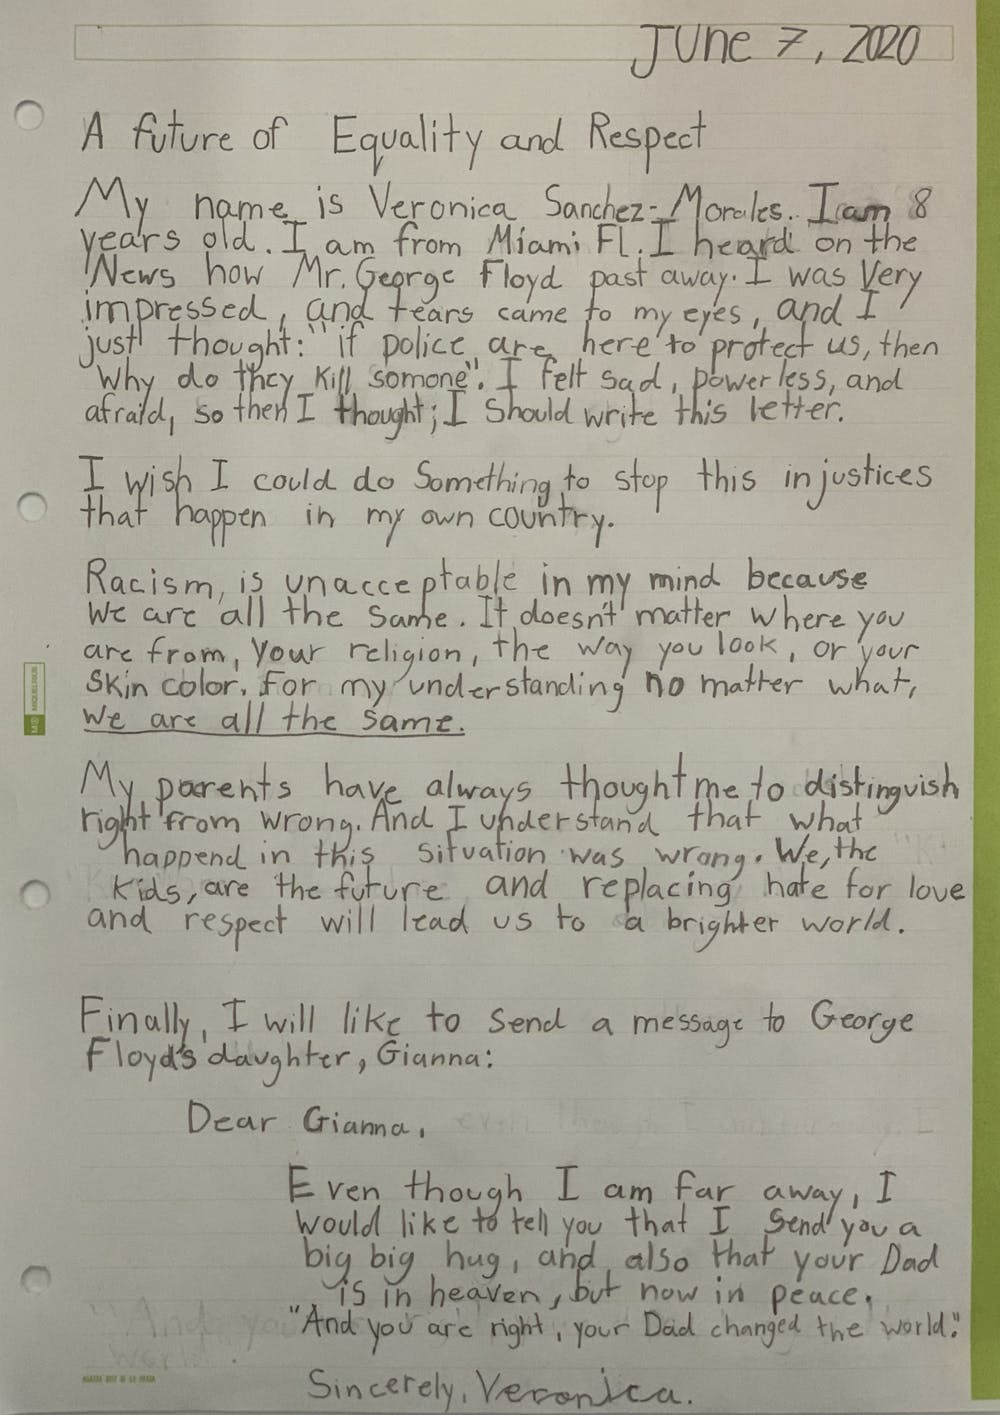 Letter to the Editor: An 8-year-old's reflections on George Floyd